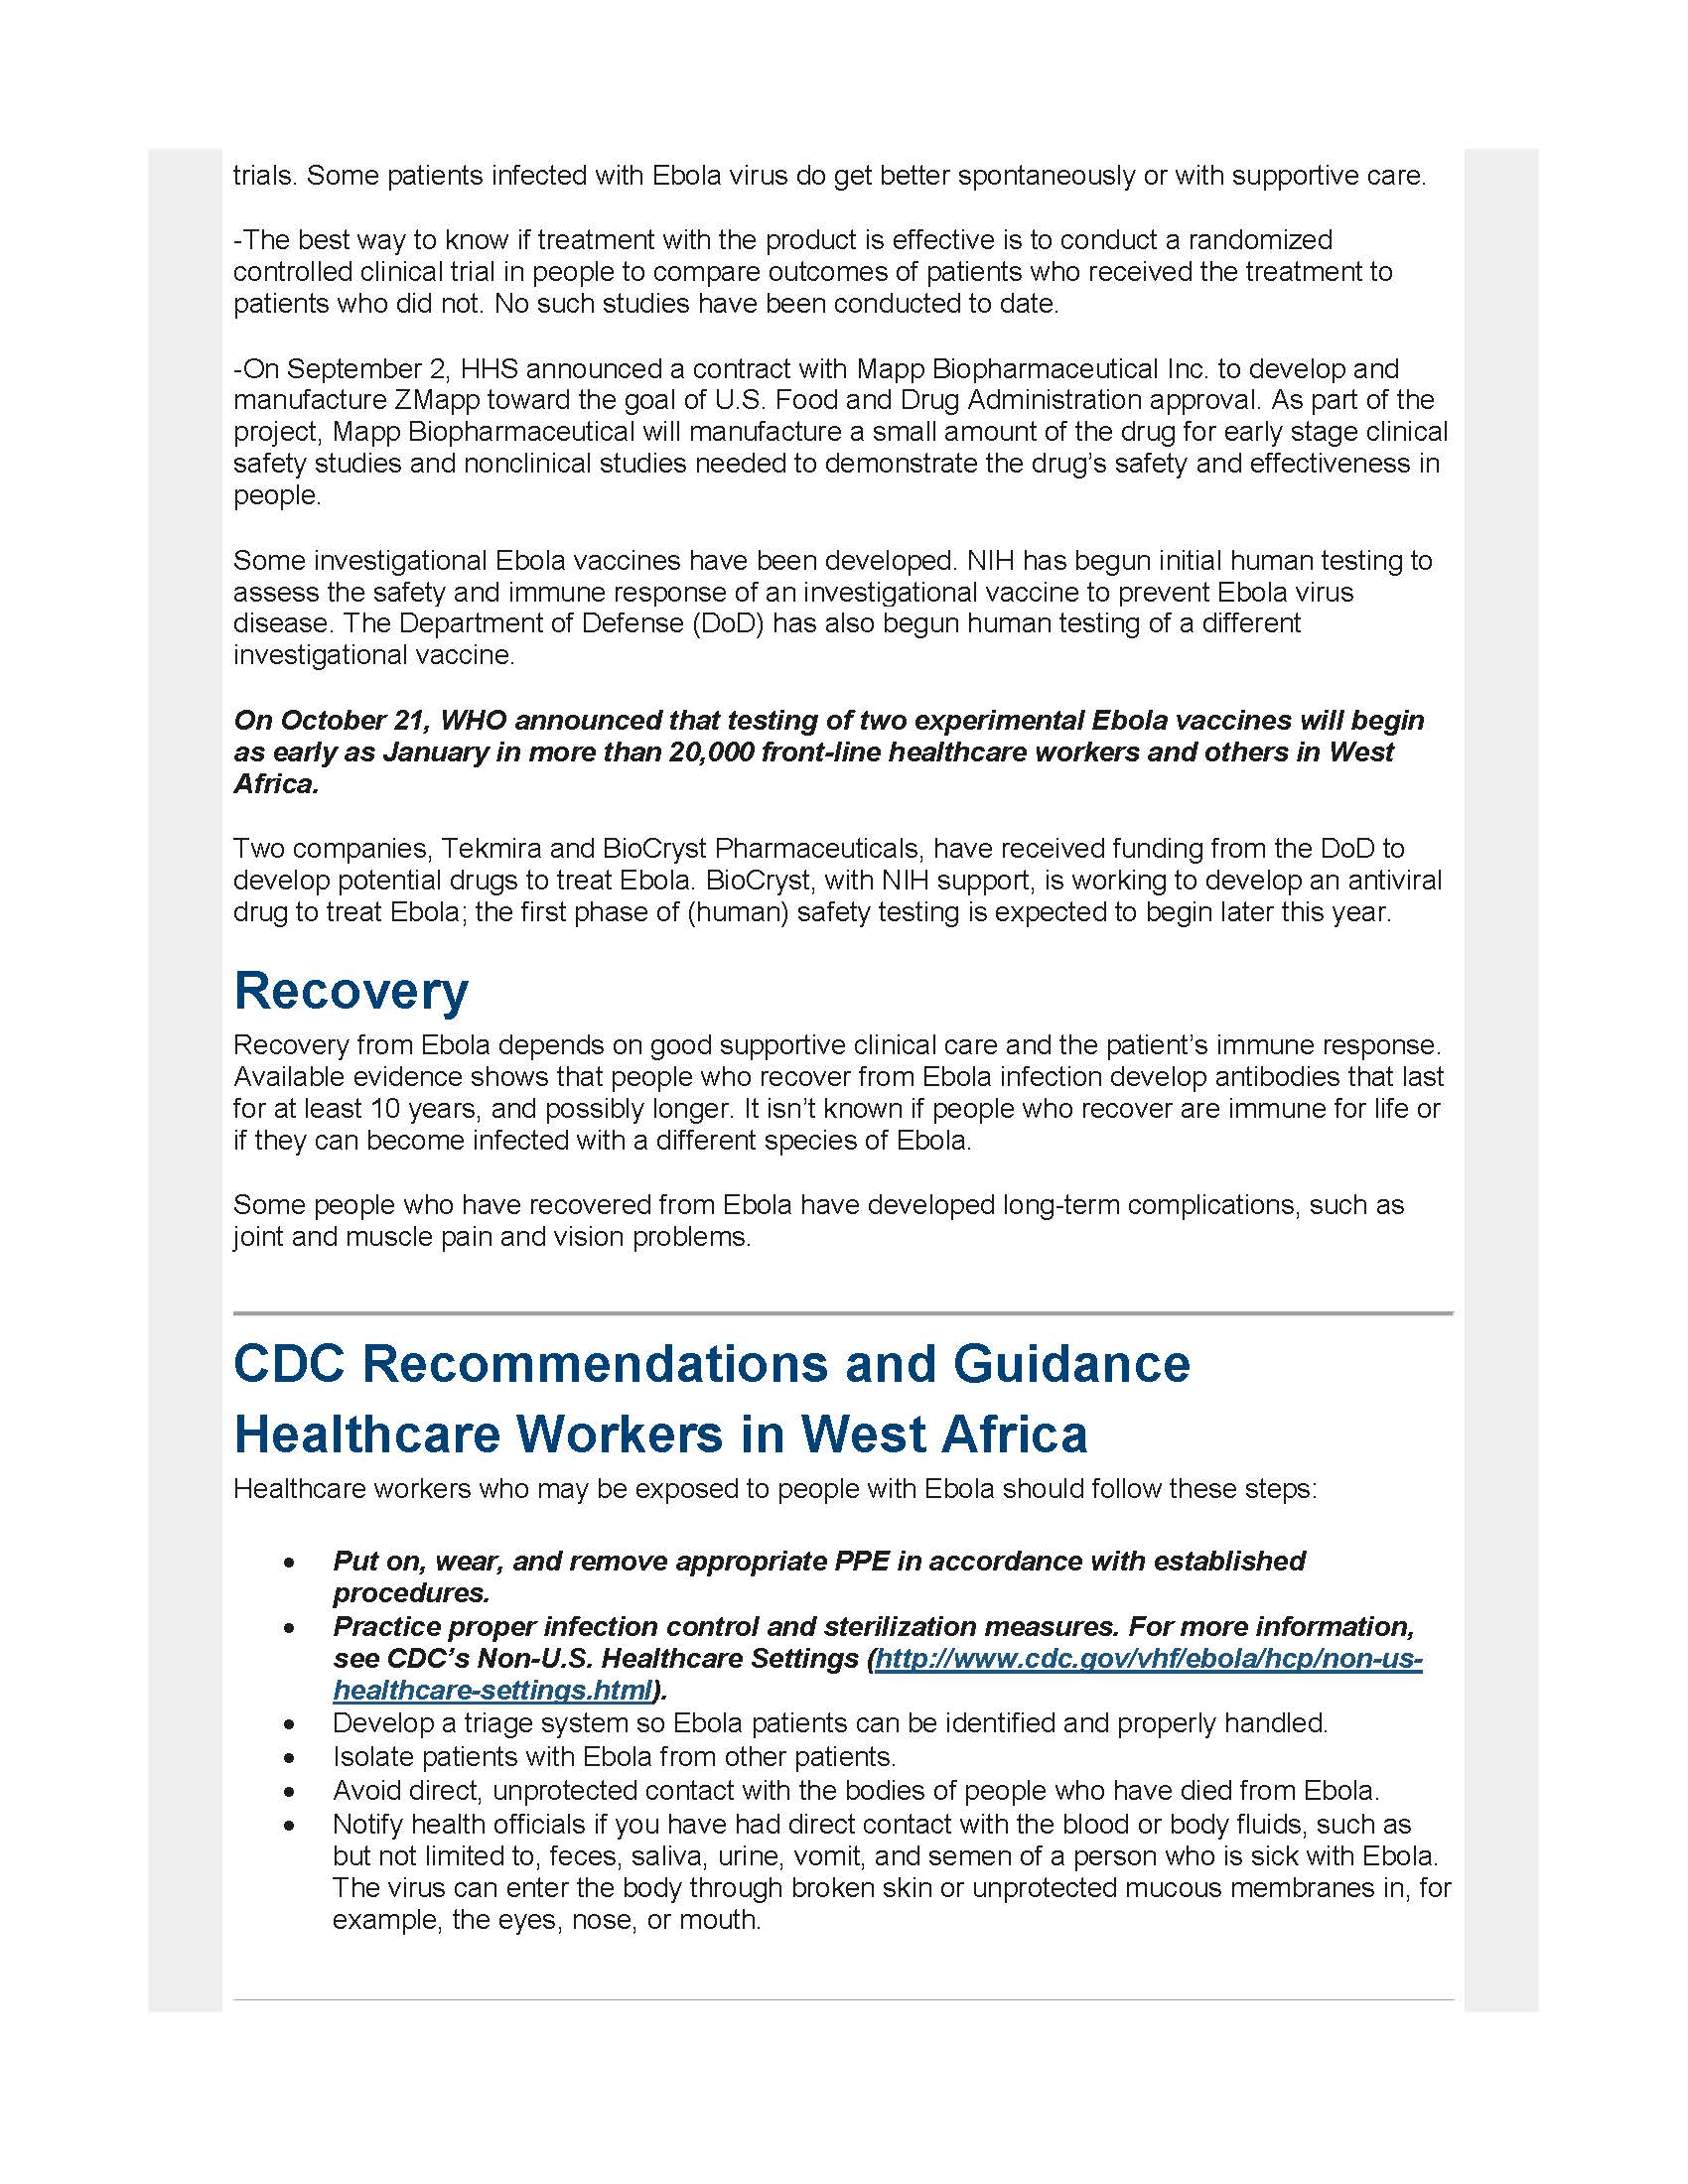 CDC Emergency Partners Update 2014 Ebola Response_Page_13.jpg